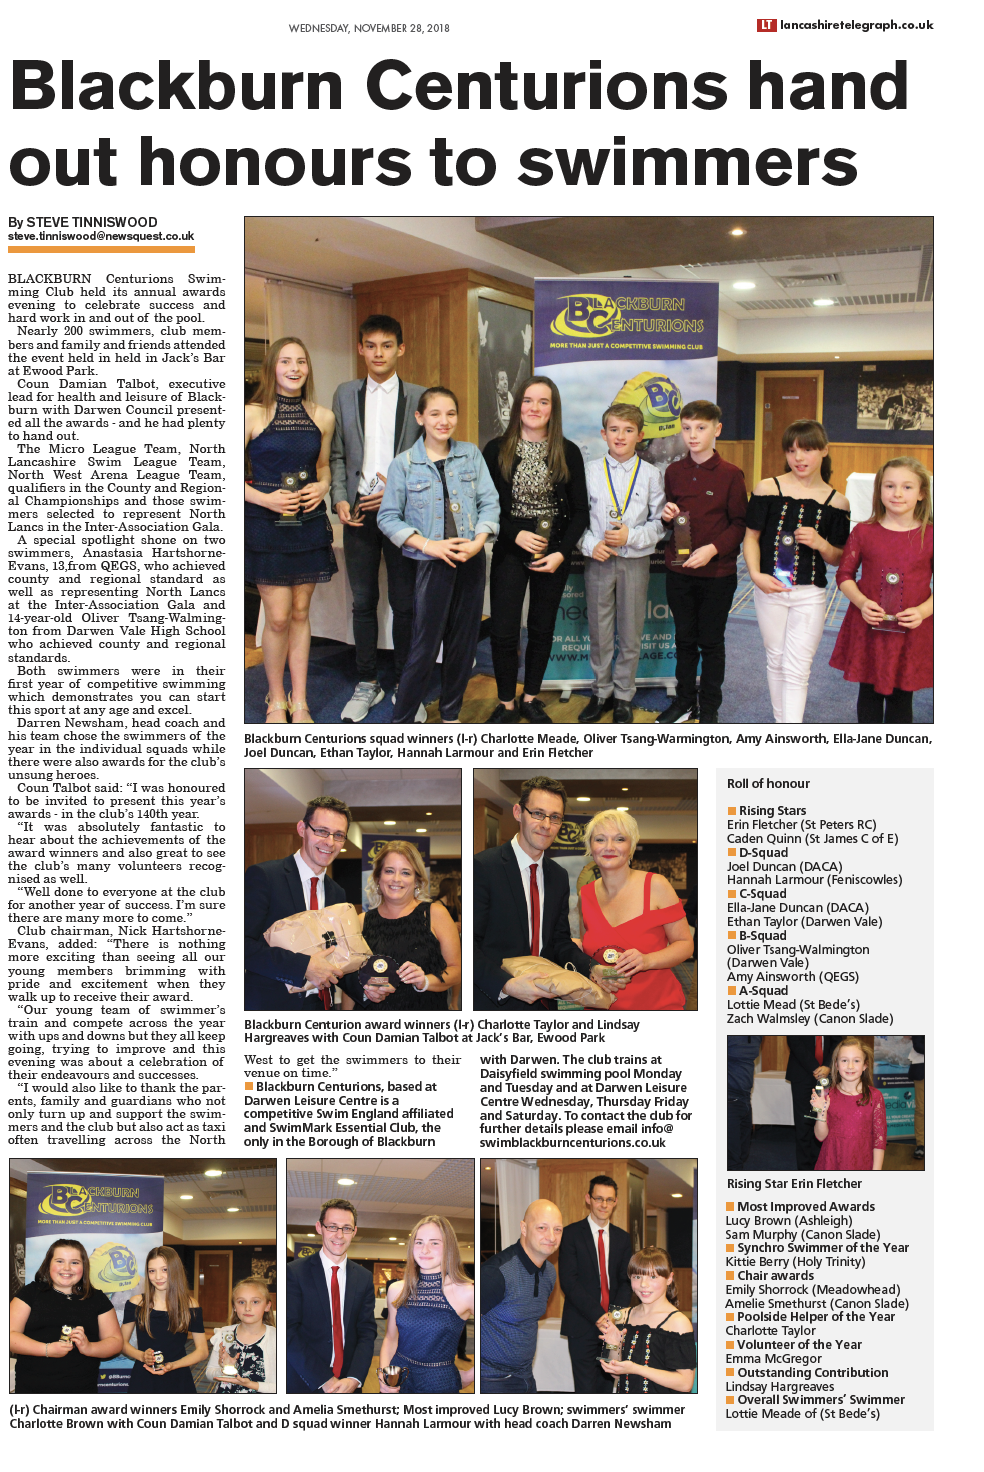 Blackburn centurions awards evening